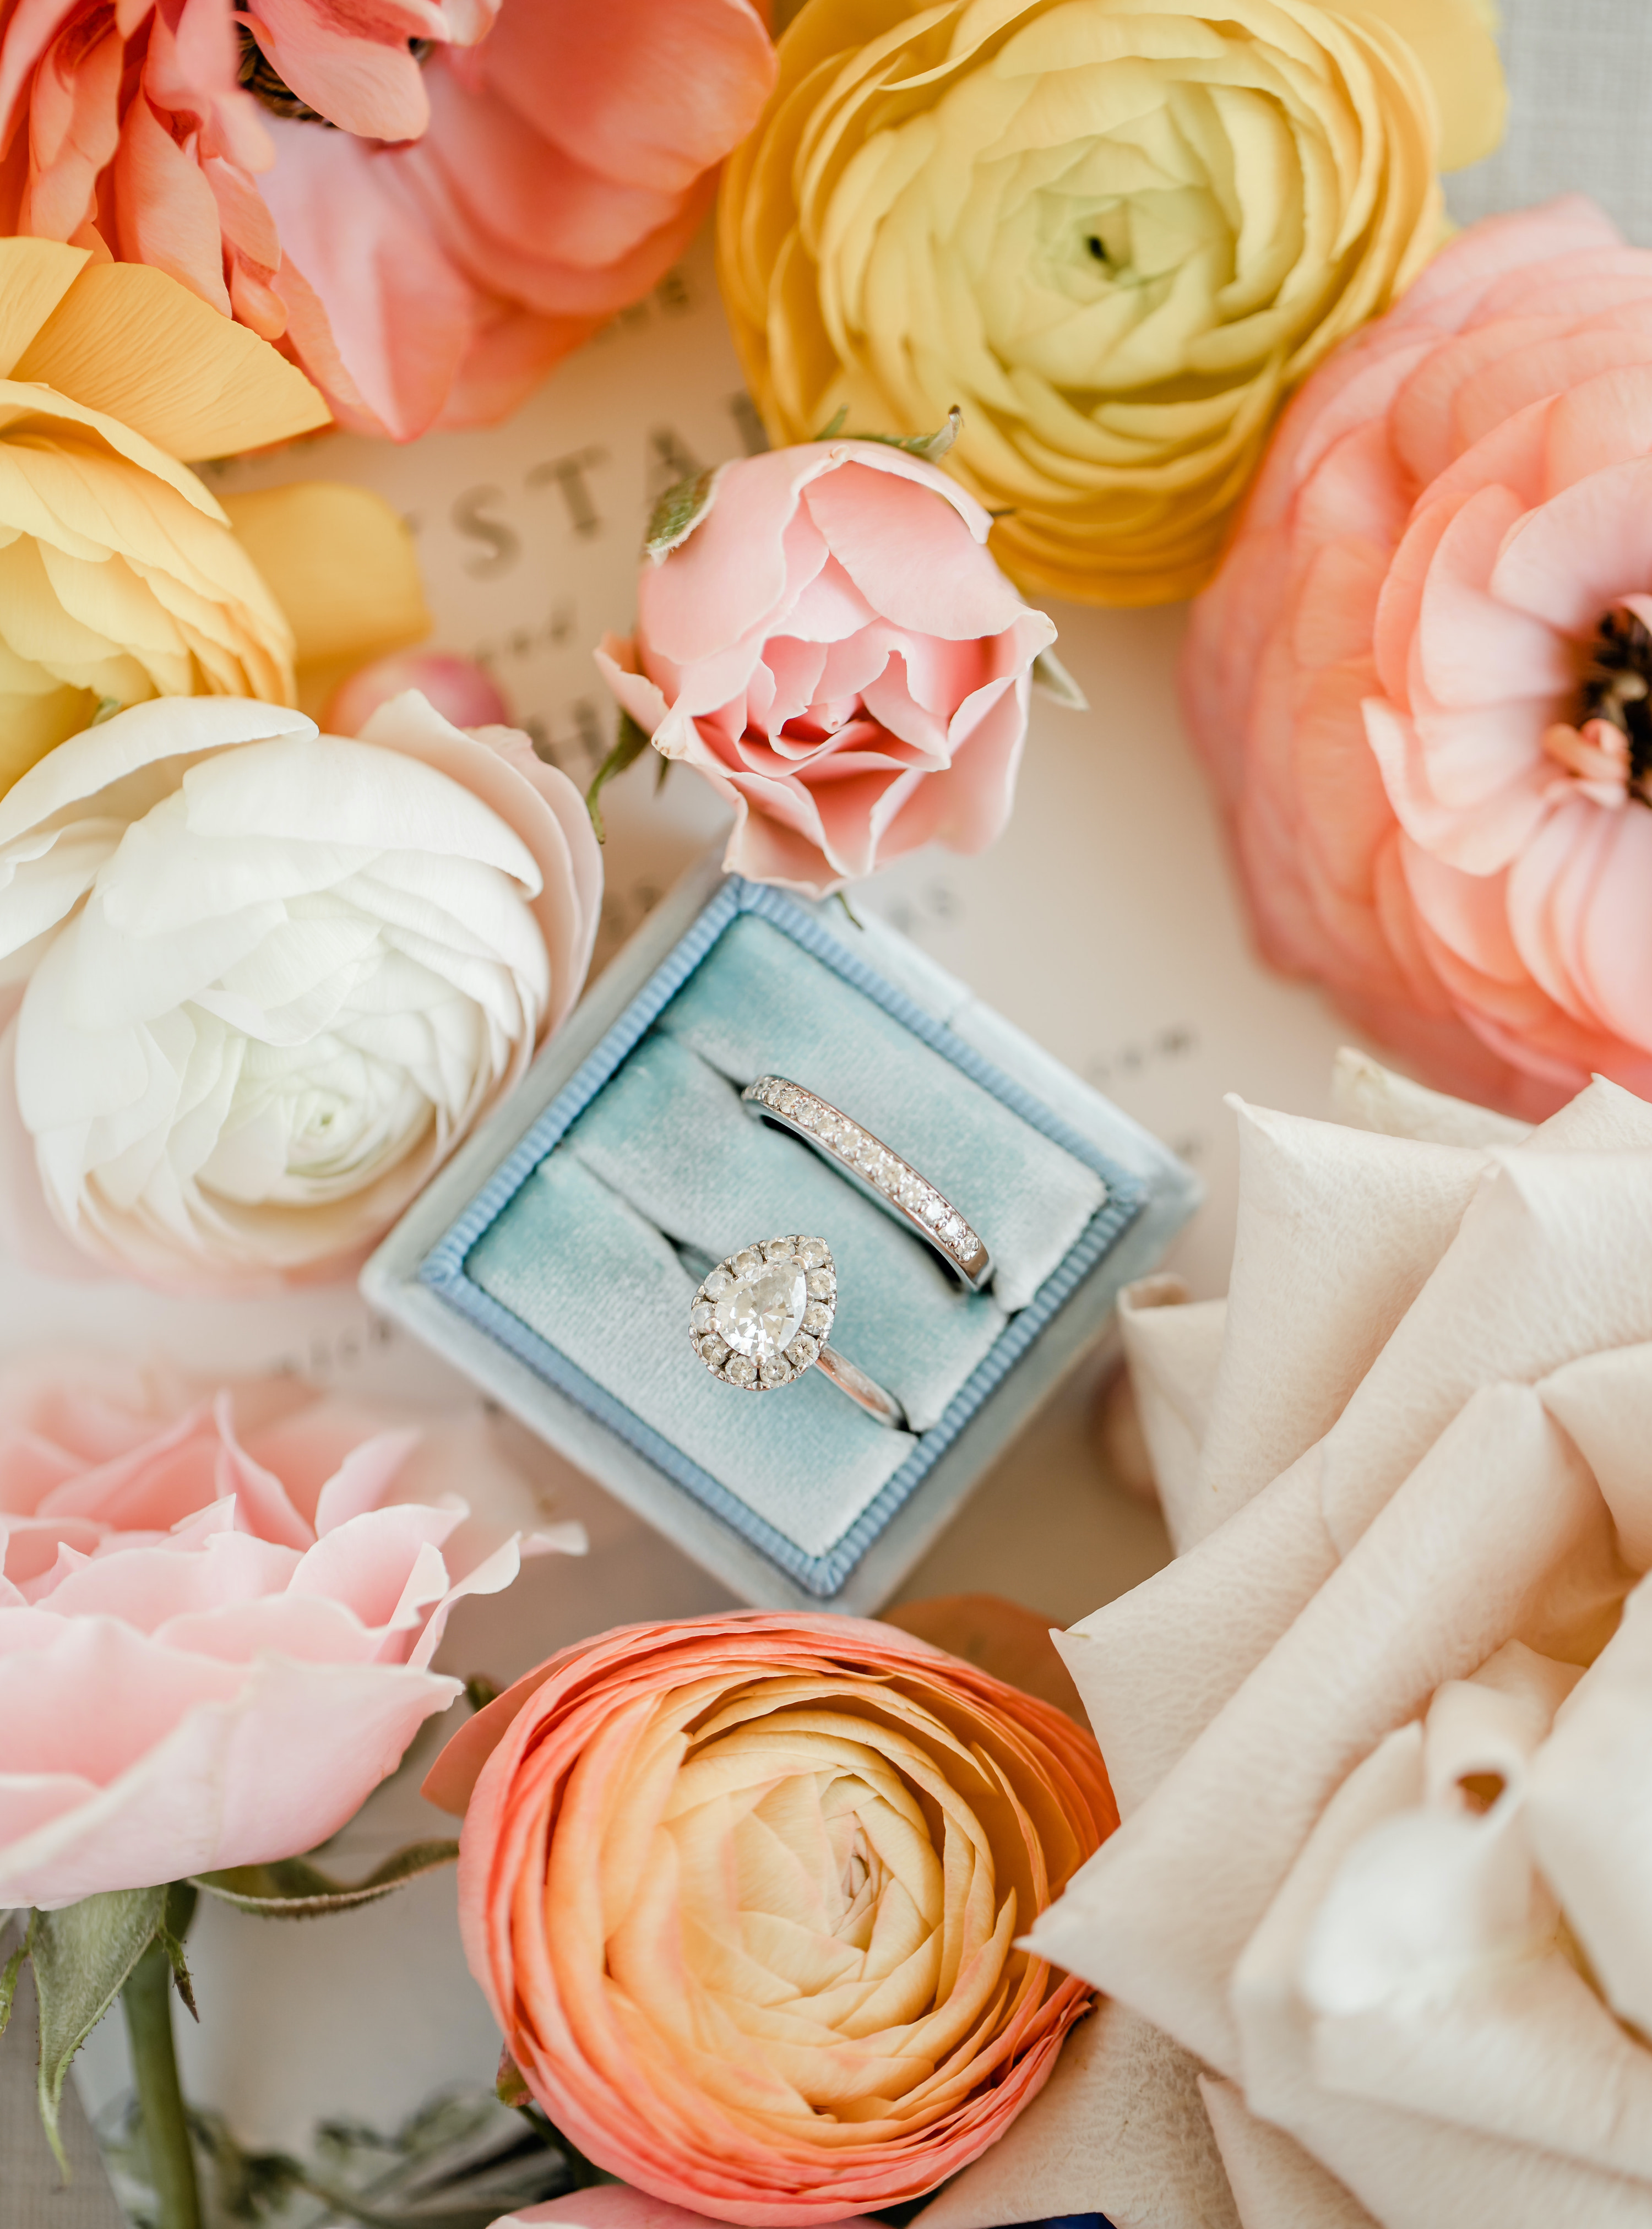 An engagement ring in a blue box surrounded by vibrant flowers.